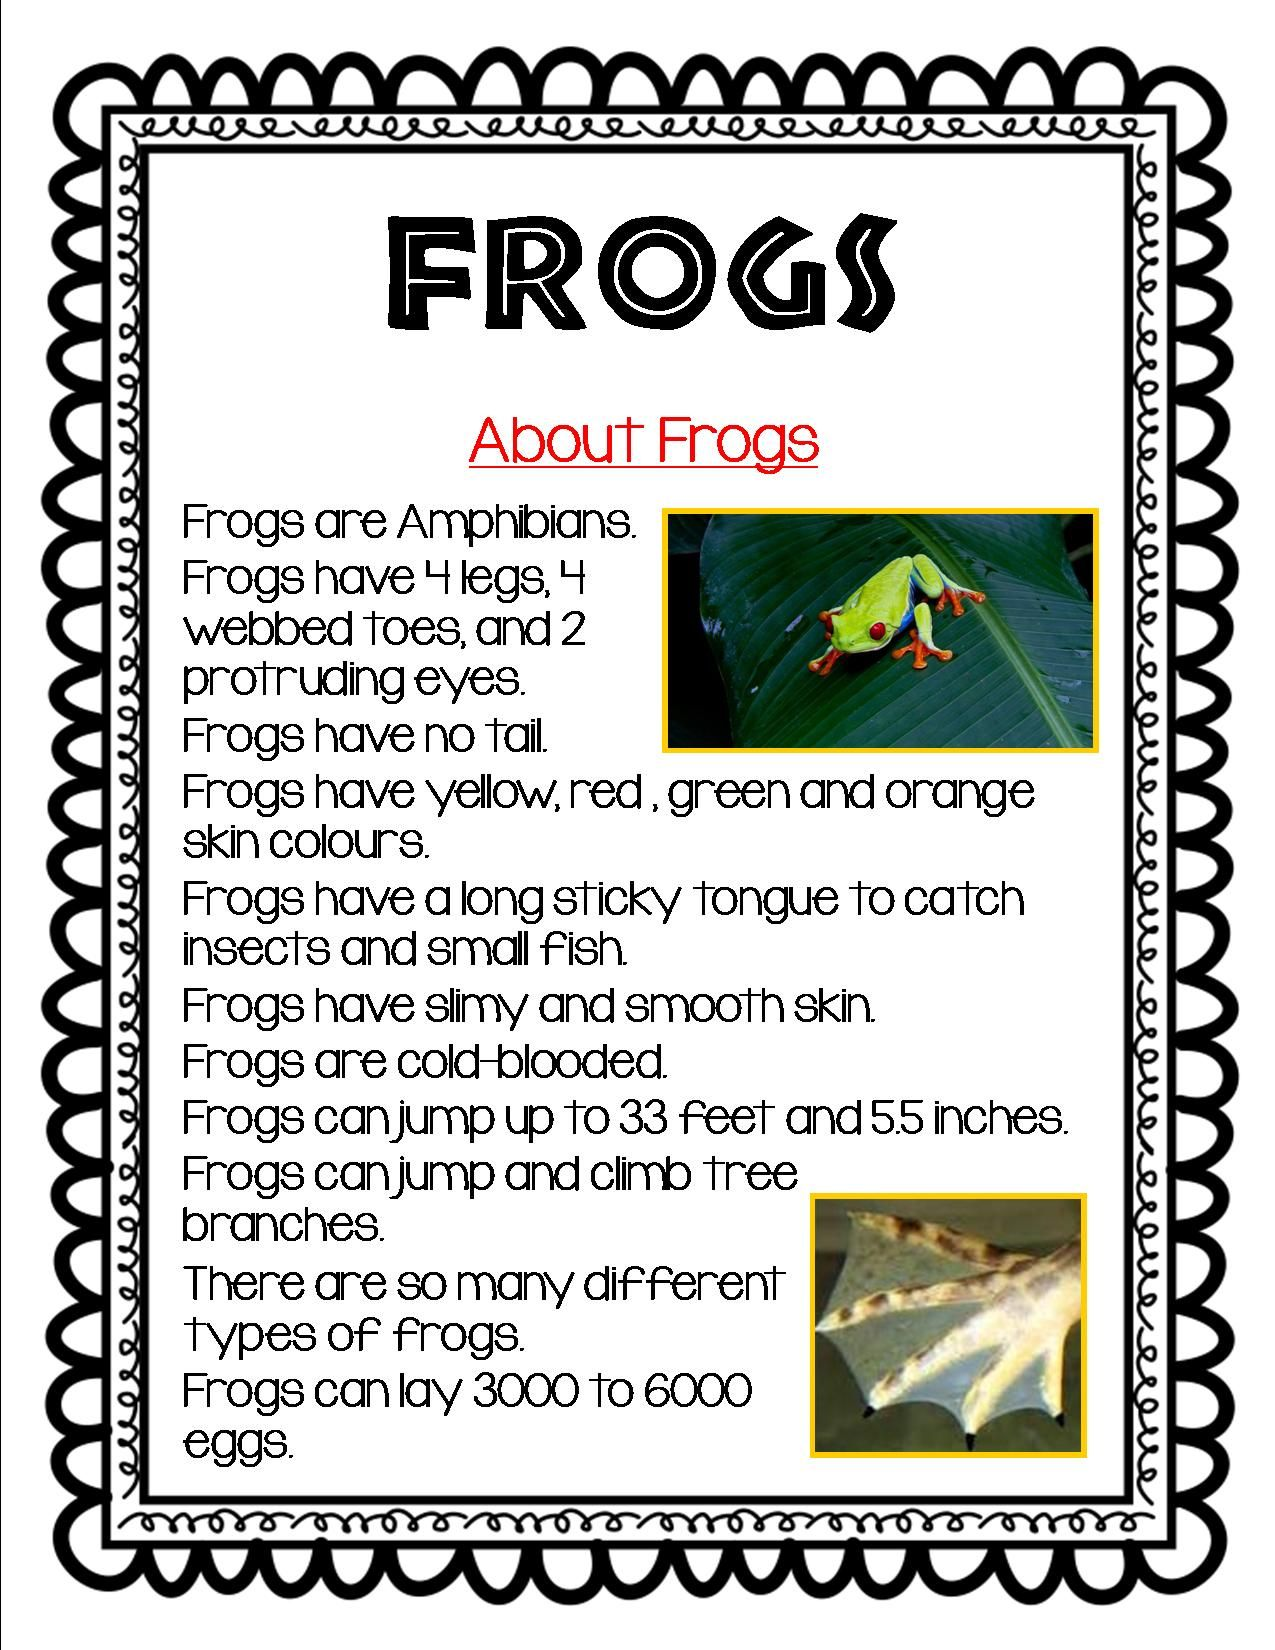 Grade 1 And Grade 2 Students Can Read And Learn About